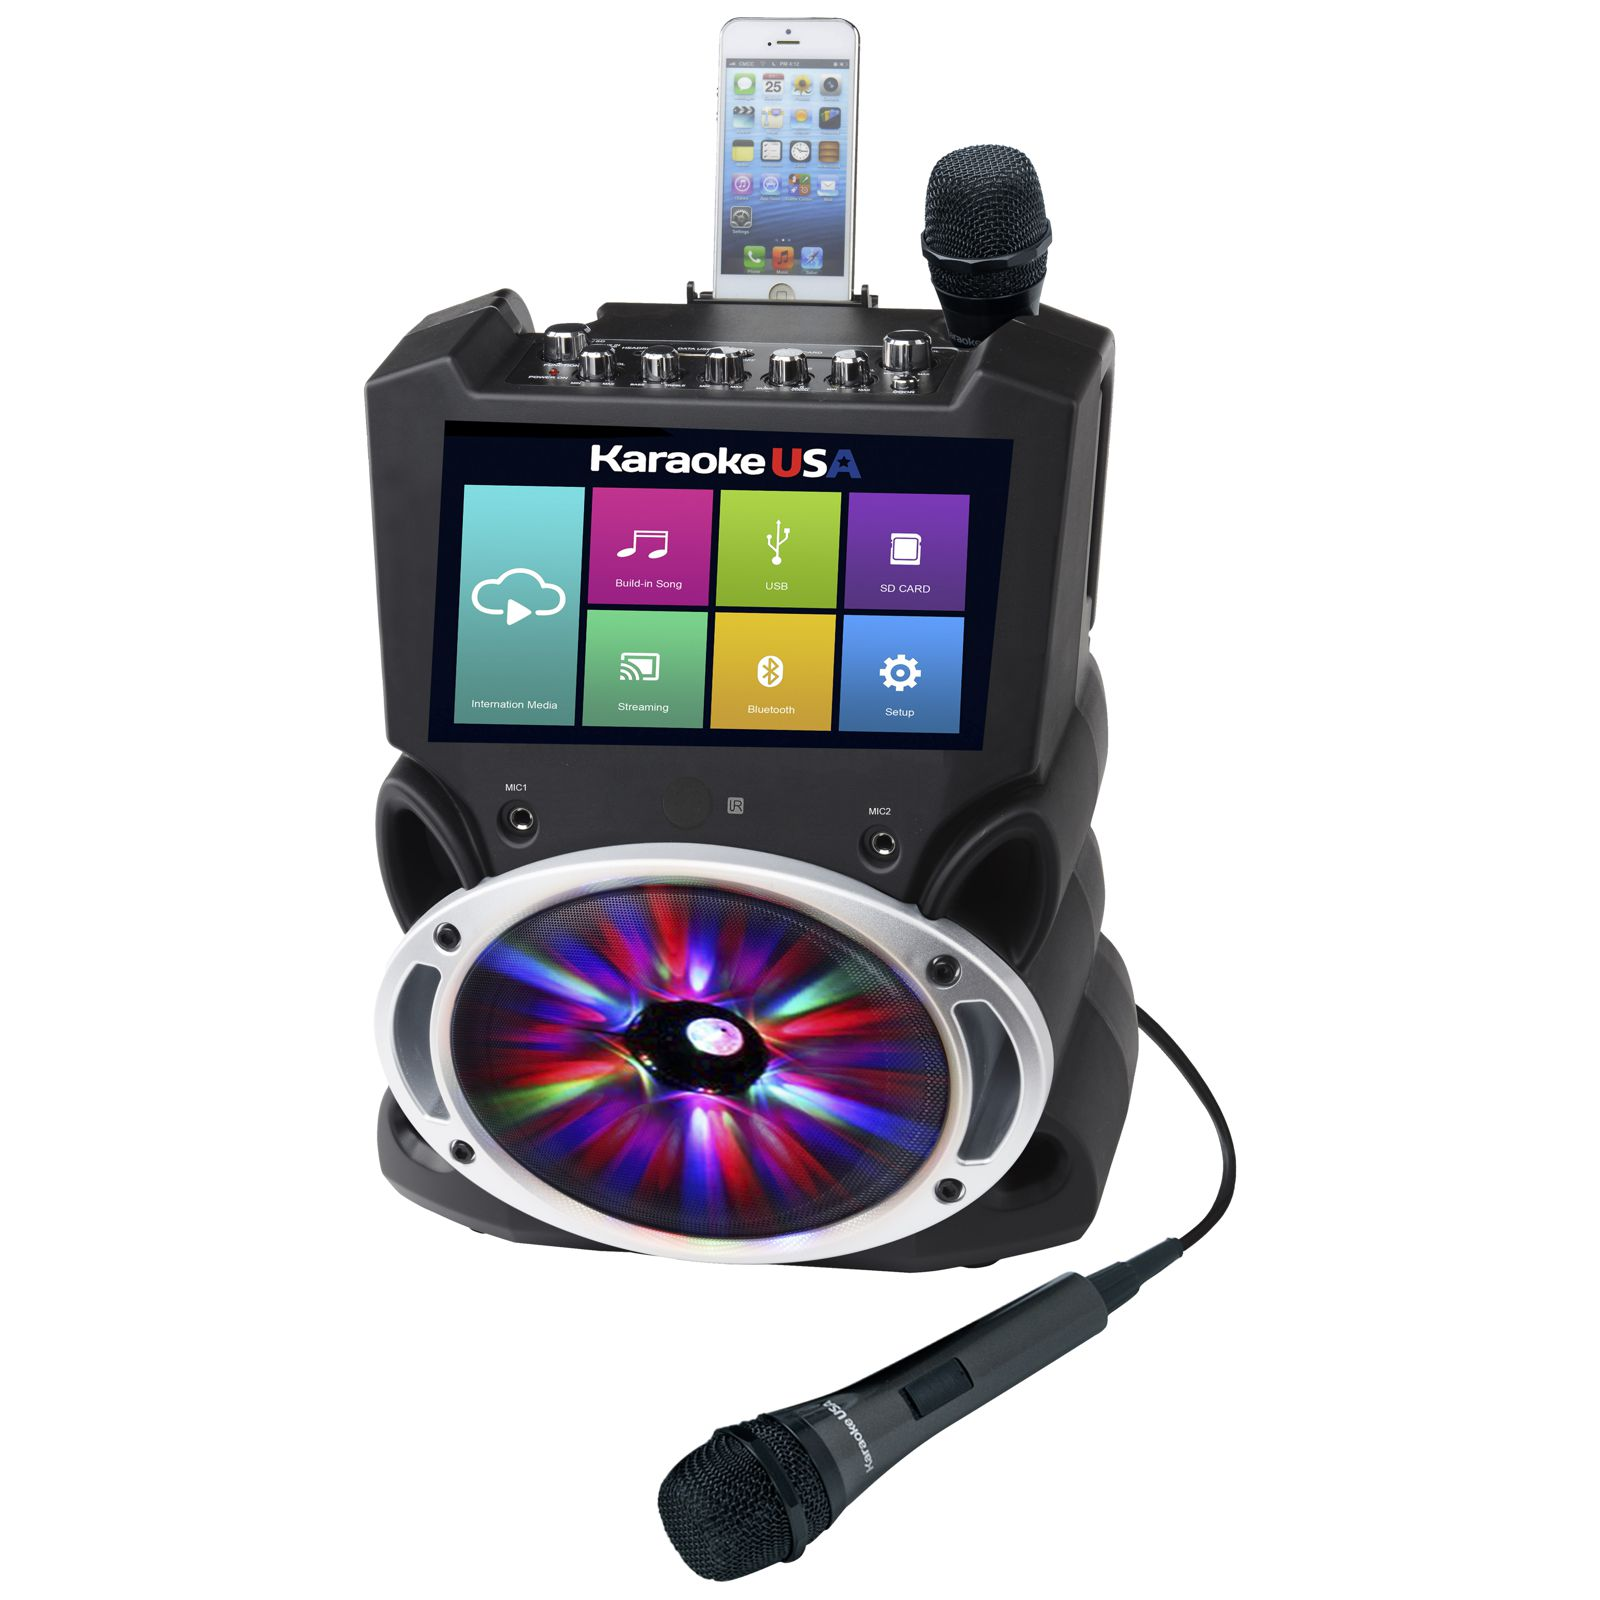 WK849 - All-In-One Wi-Fi Multimedia Karaoke System With 9